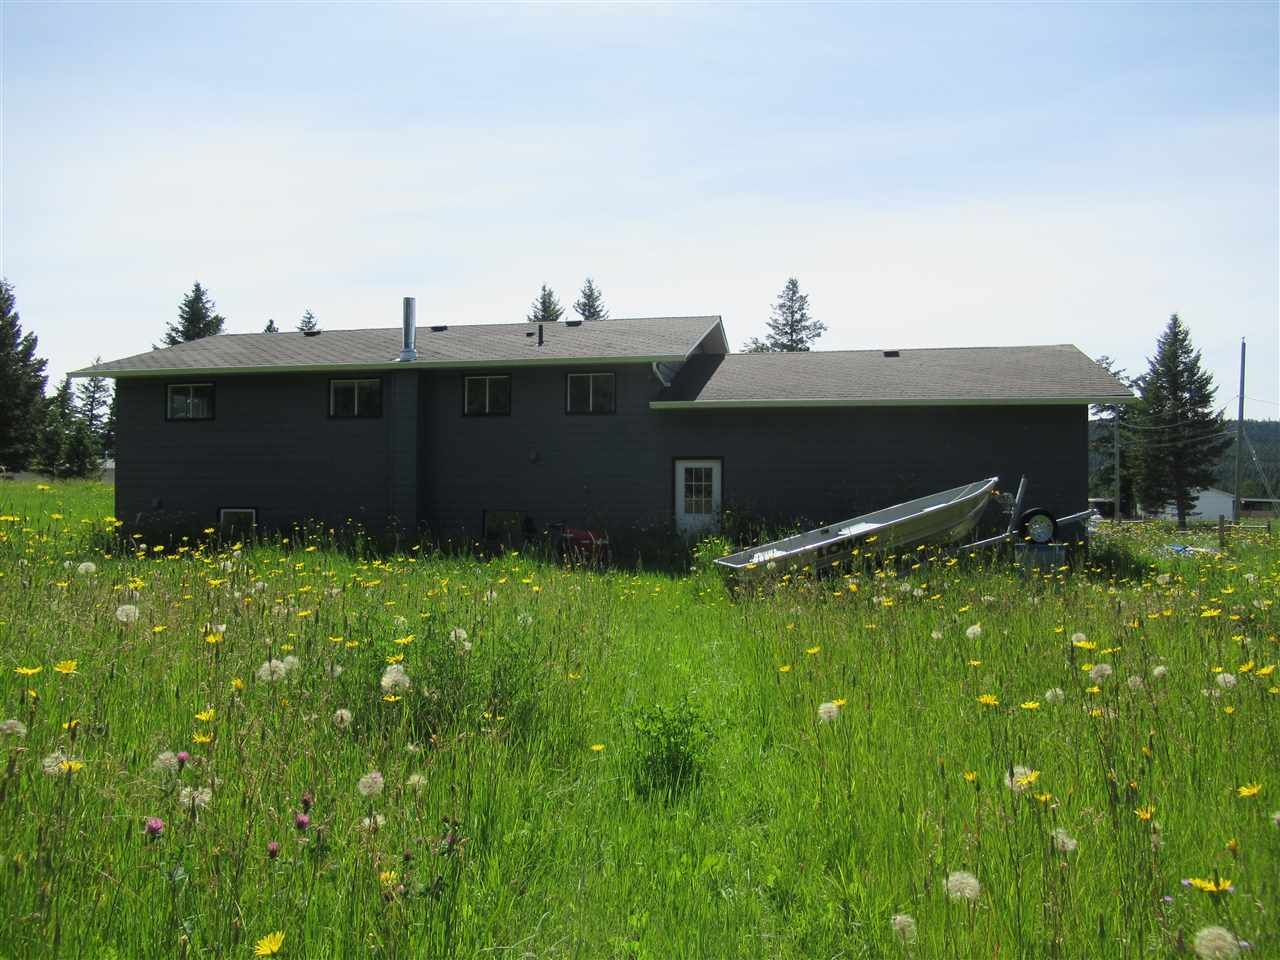 Photo 23: Photos: 3257 HINSCHE Road in Williams Lake: Williams Lake - Rural East House for sale (Williams Lake (Zone 27))  : MLS®# R2477340